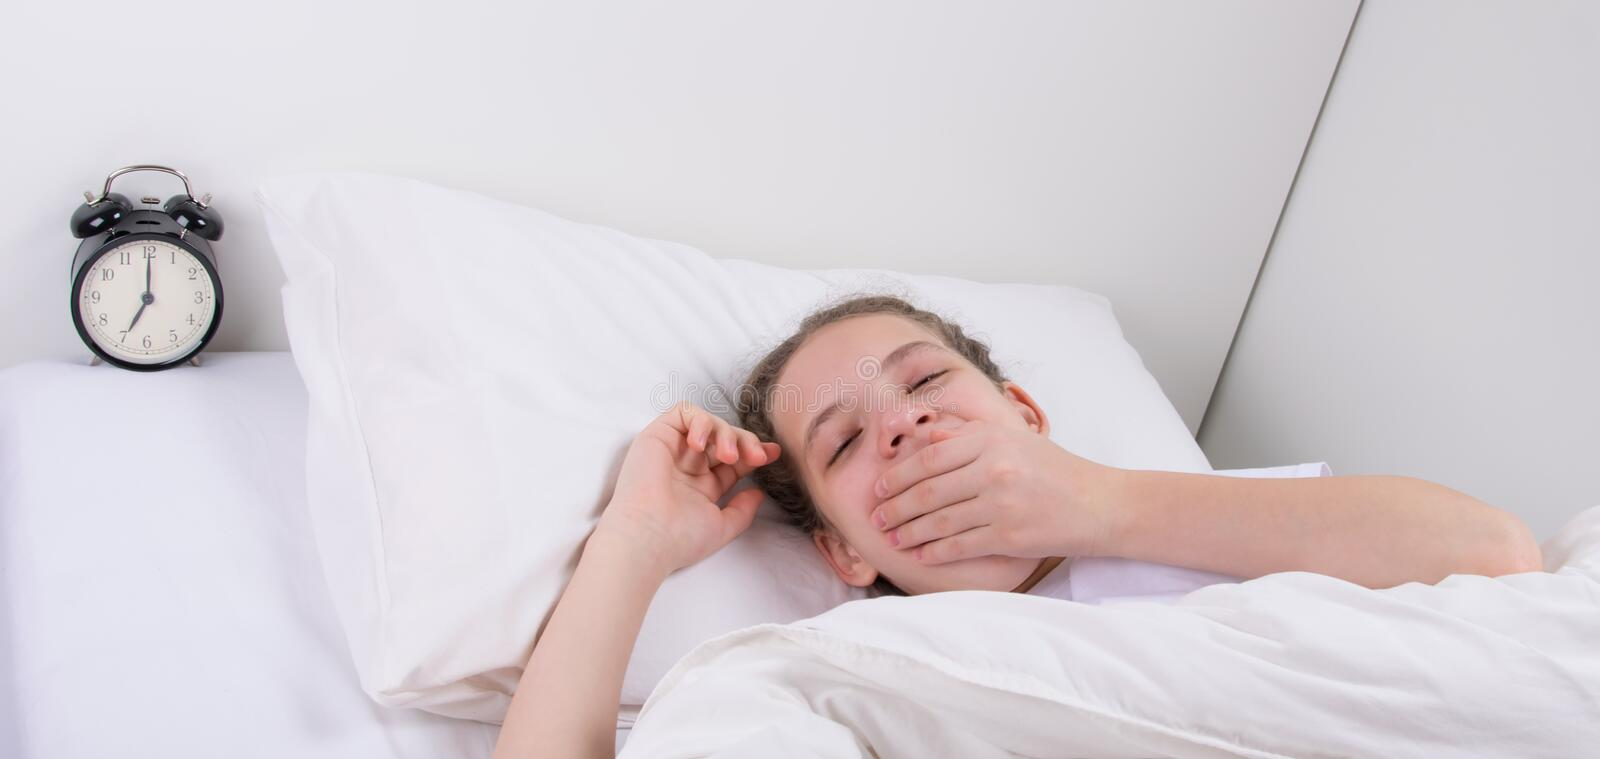 The girl, in a white bed, wakes up to the sound of an alarm clock stock photography